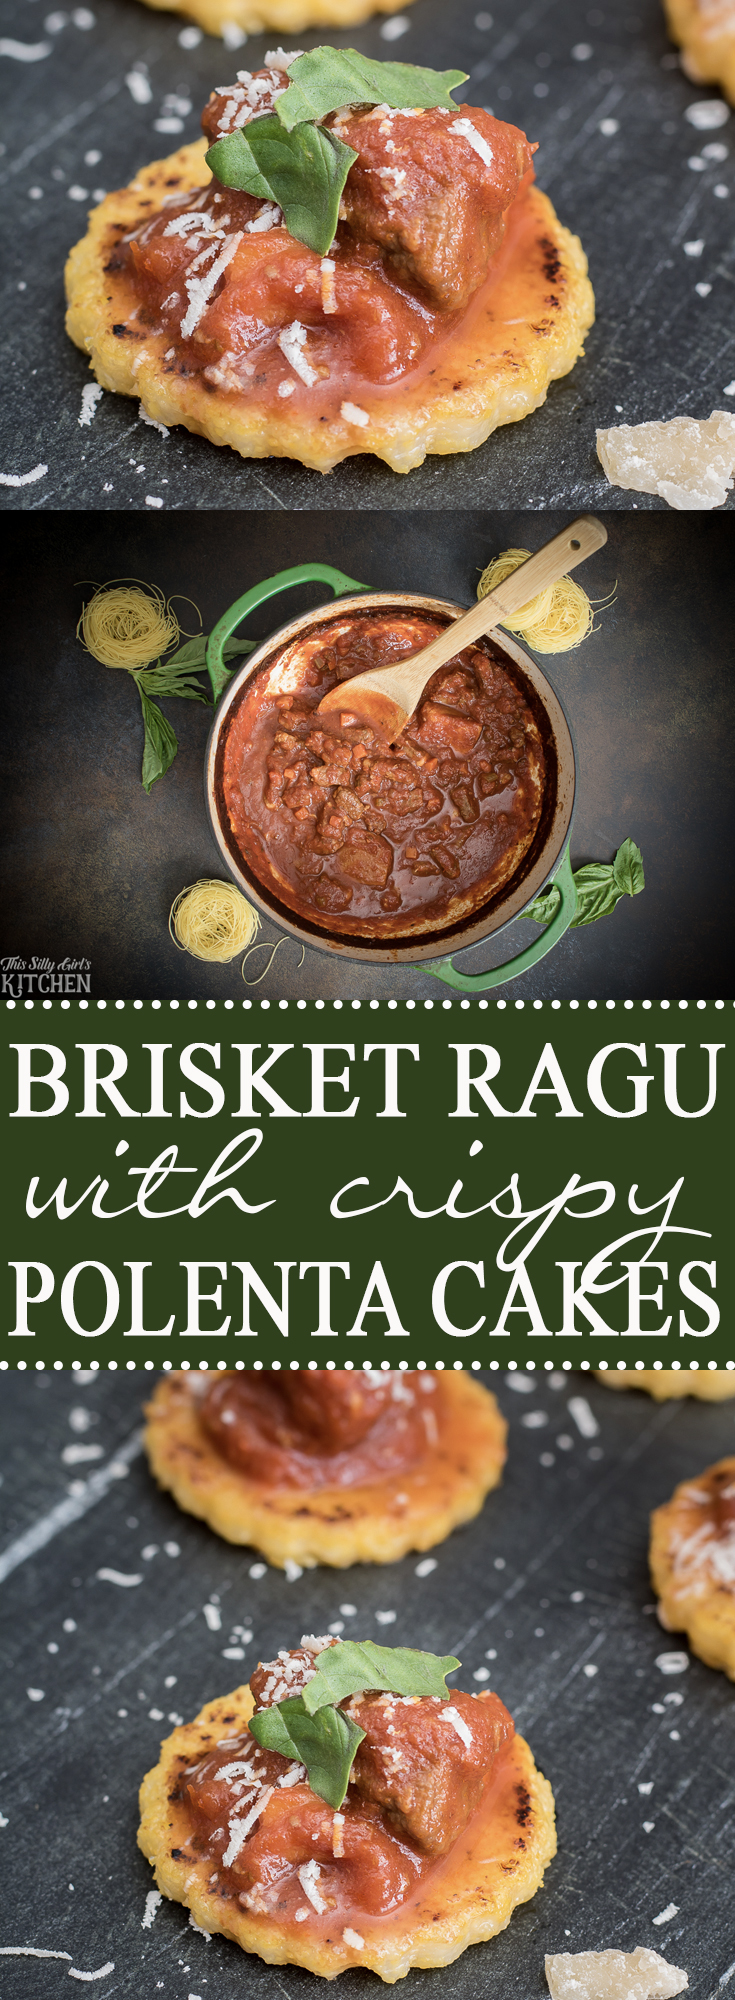 Brisket Ragu with Crispy Polenta Cakes is an elegant appetizer to serve at your next party! Recipe from ThisSillyGirlsKitchen.com #BrisketRagu #Ragu #Recipe #Polenta